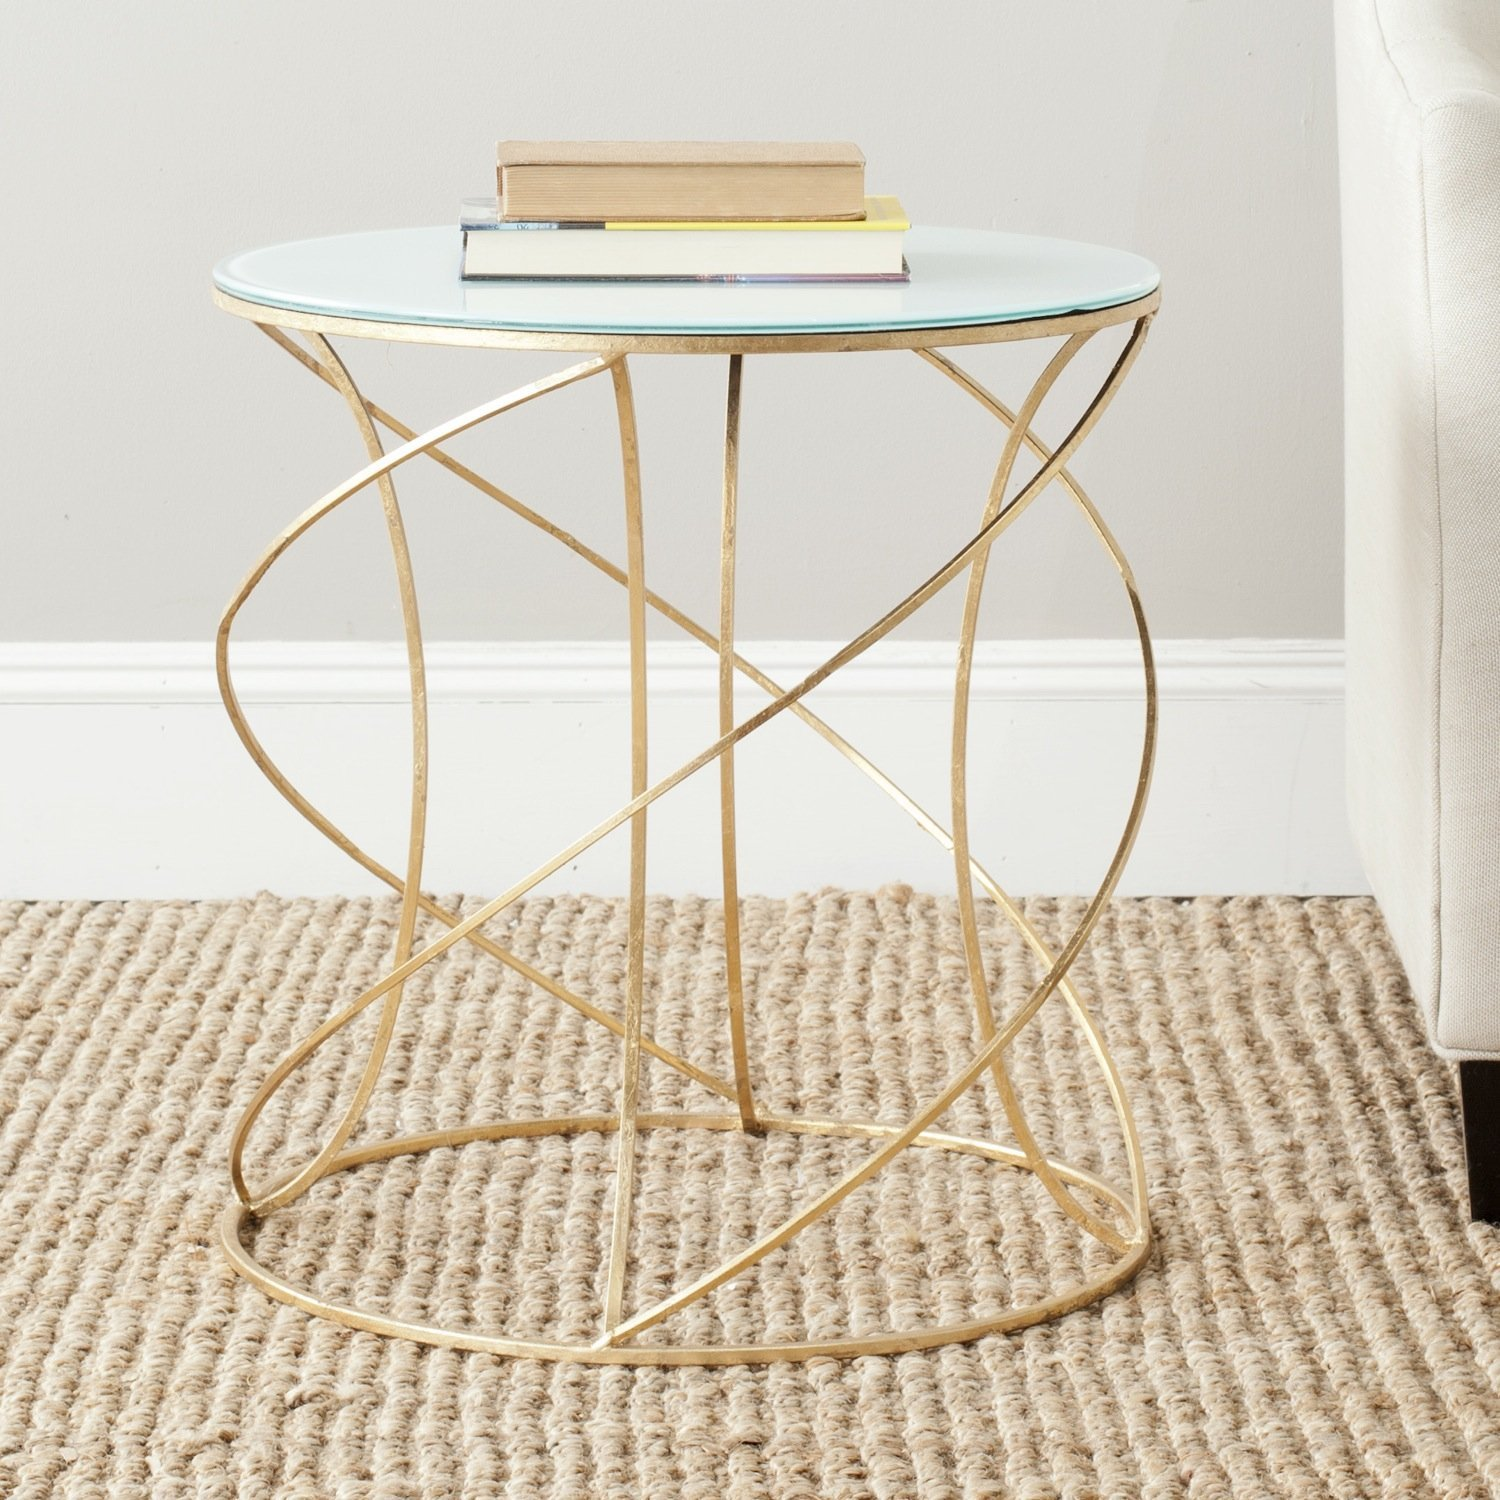 round accent table size the lucky design multipurpose indoor side tables ikea knurl mirrored gourd lamp shades light white metal door threshold trim gold media console piece